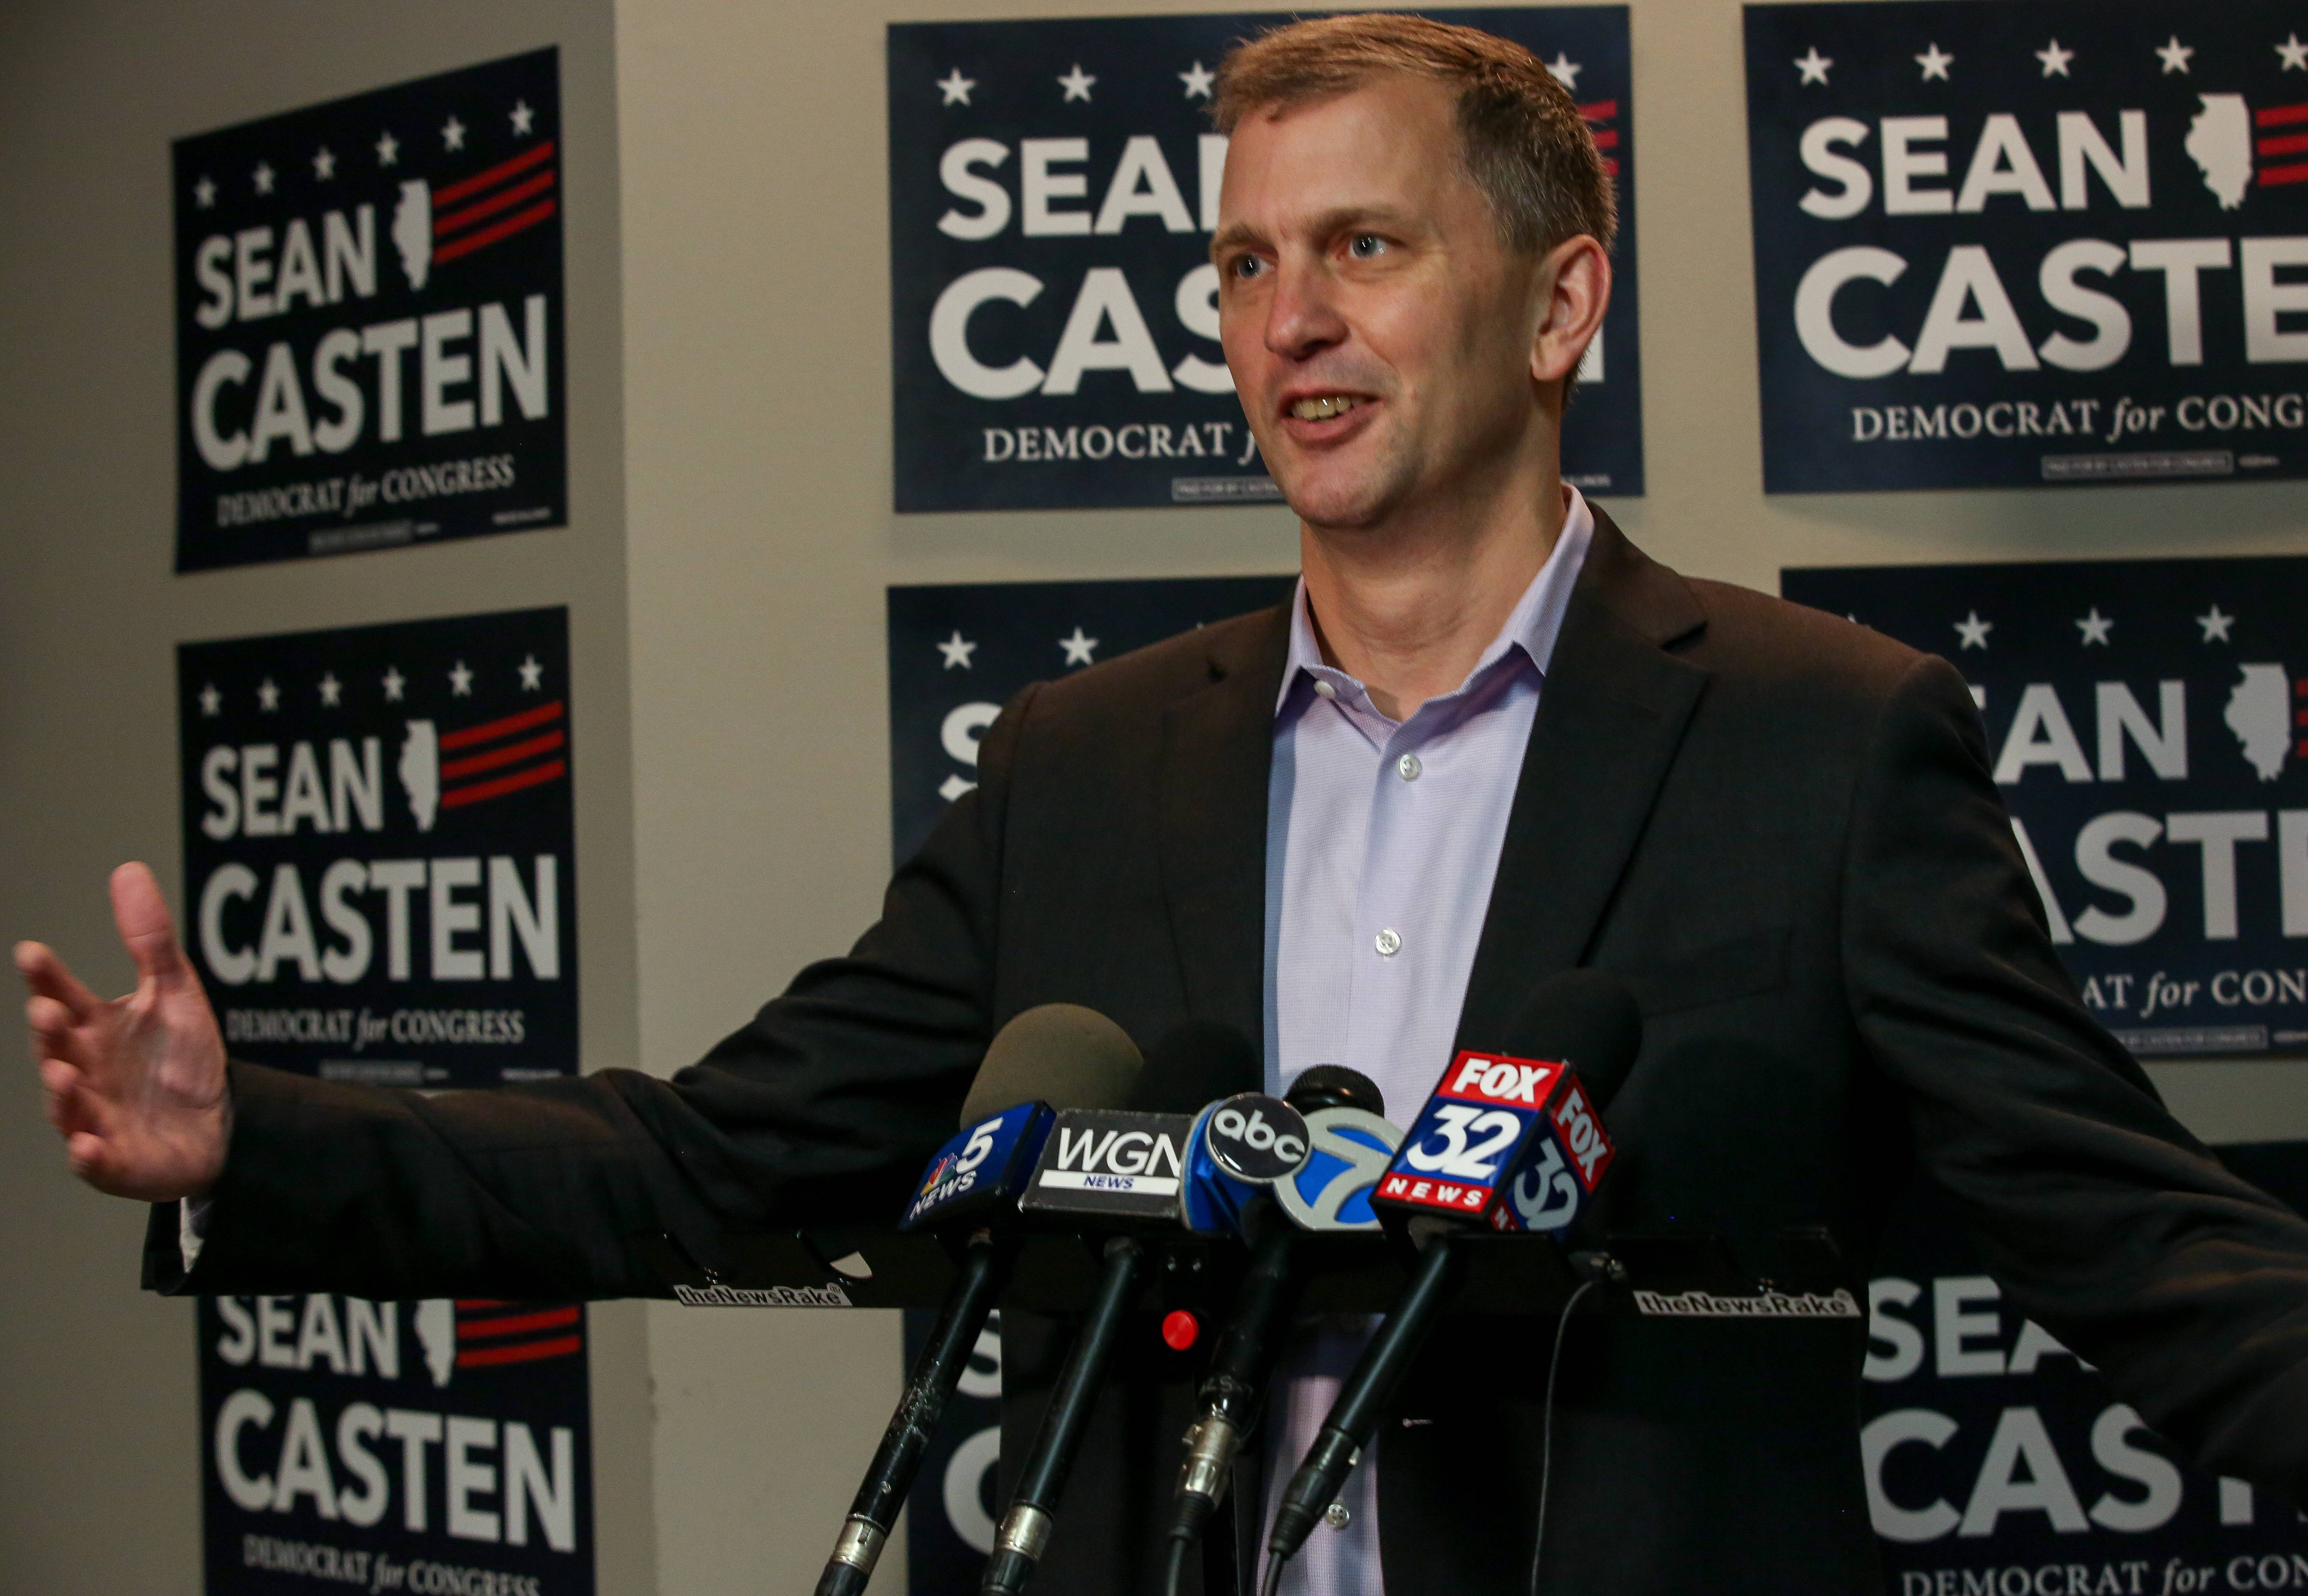 How activism, health care concerns pushed Casten to Congress